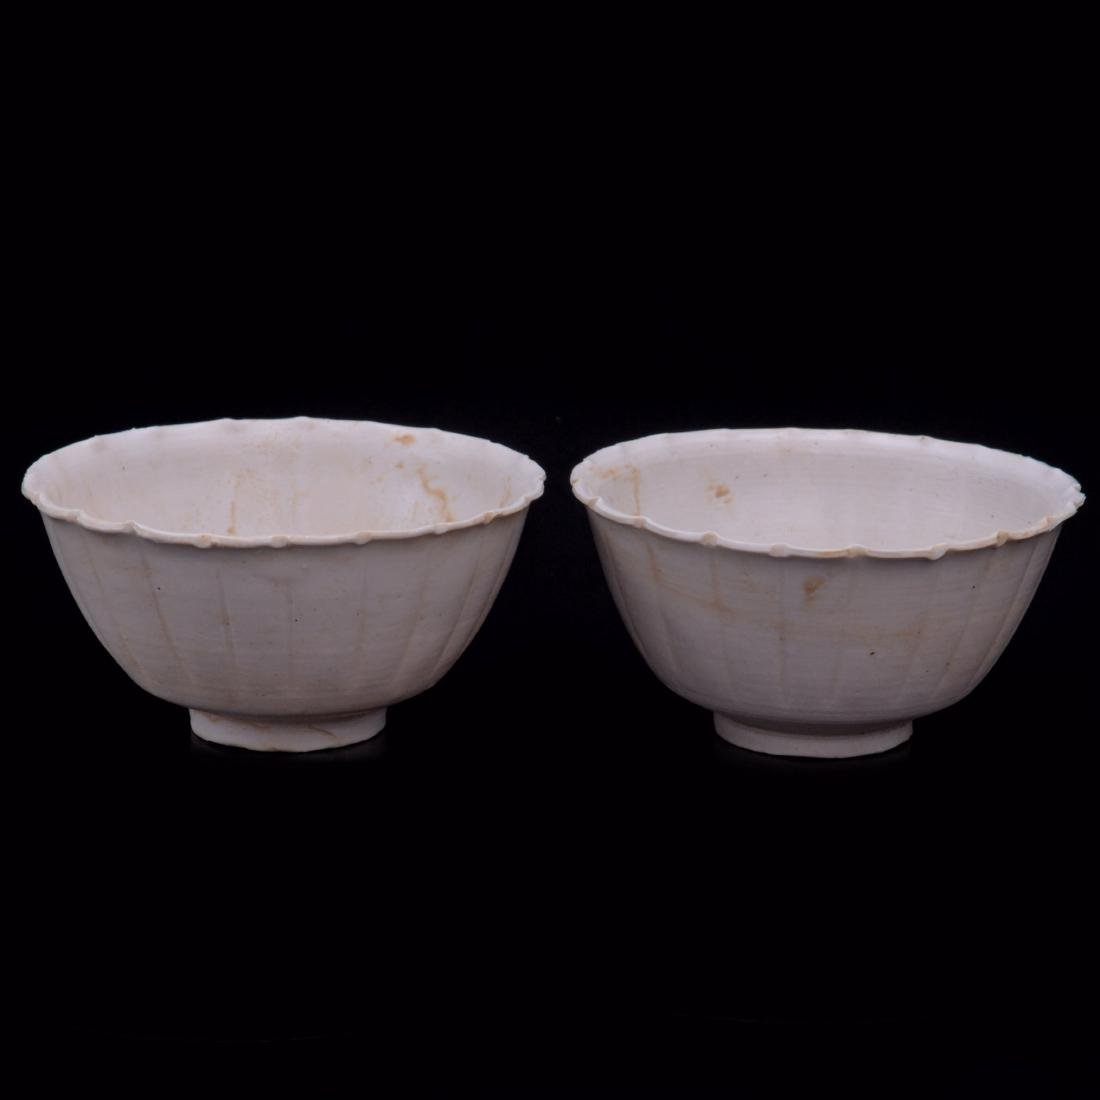 SONG DYNASTY, A PAIR OF DING KILN/WARE BOWLS